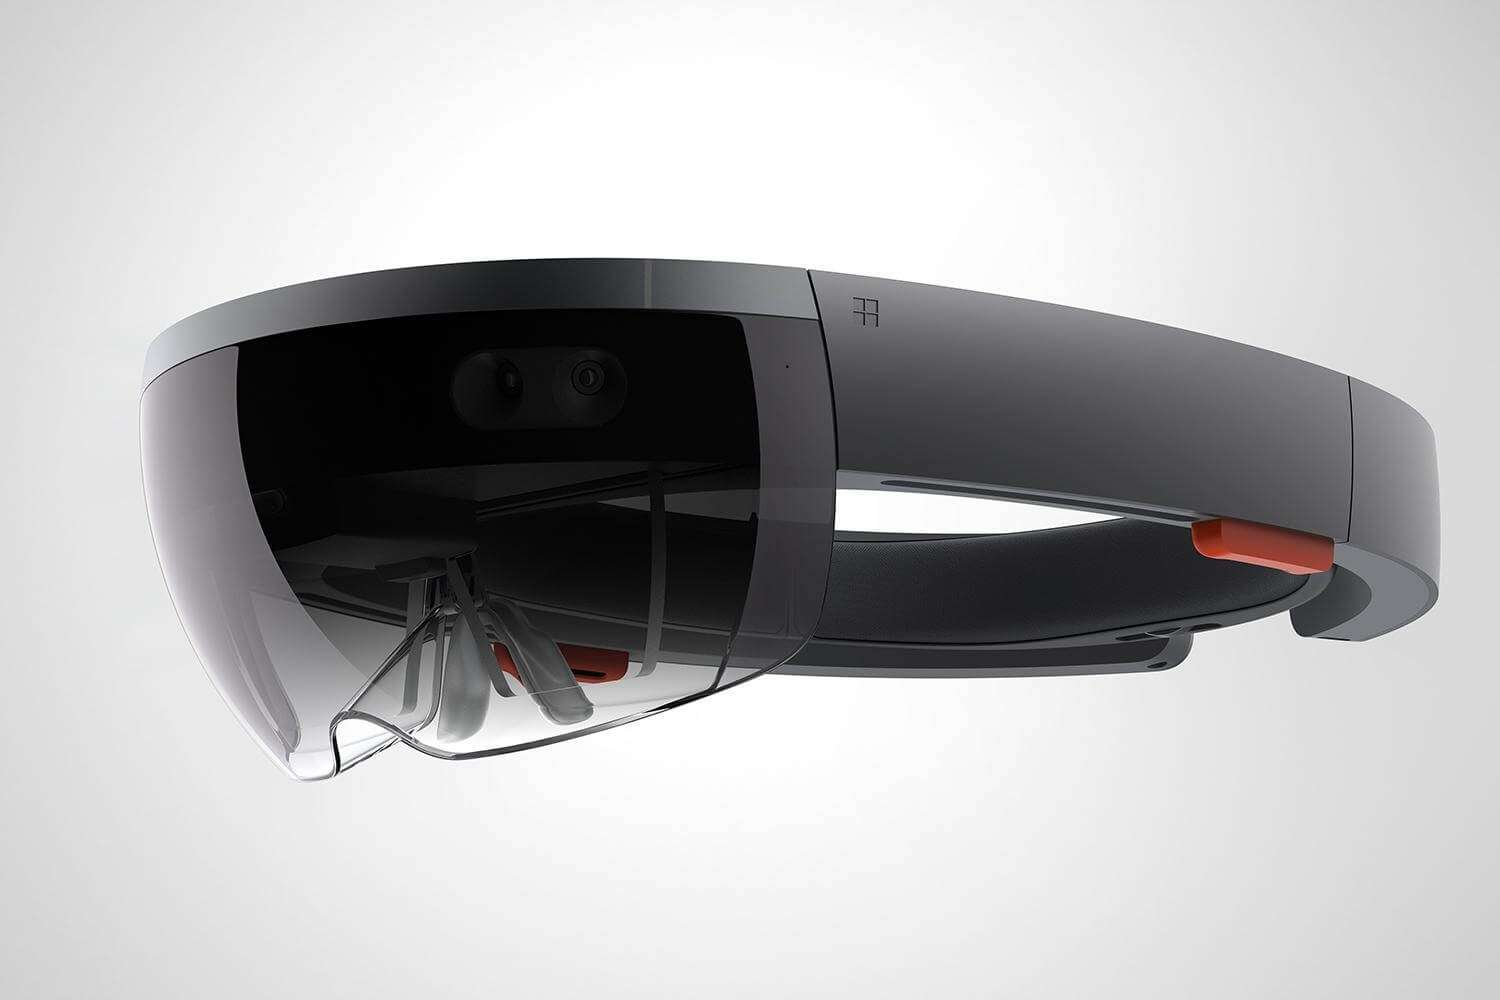 Hololens – The Ultimate Intoduction